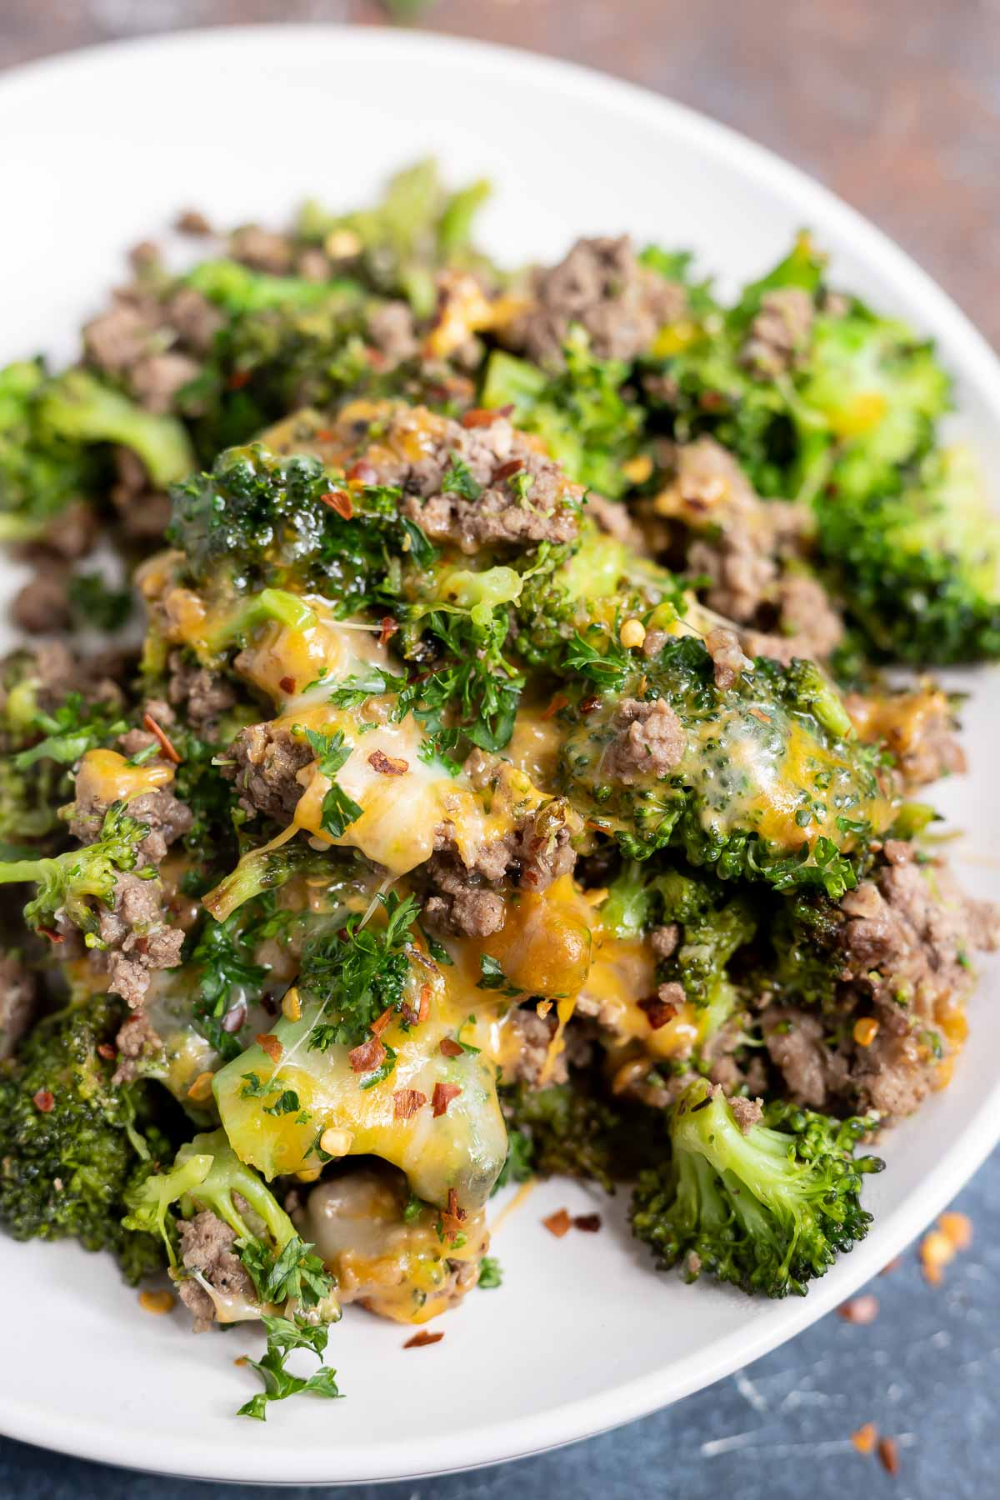 Low Carb Ground Beef And Broccoli Tasty Low Carb Recipes Recipe In 2020 Healthy Ground Beef Ground Beef And Broccoli Ground Beef Recipes For Dinner